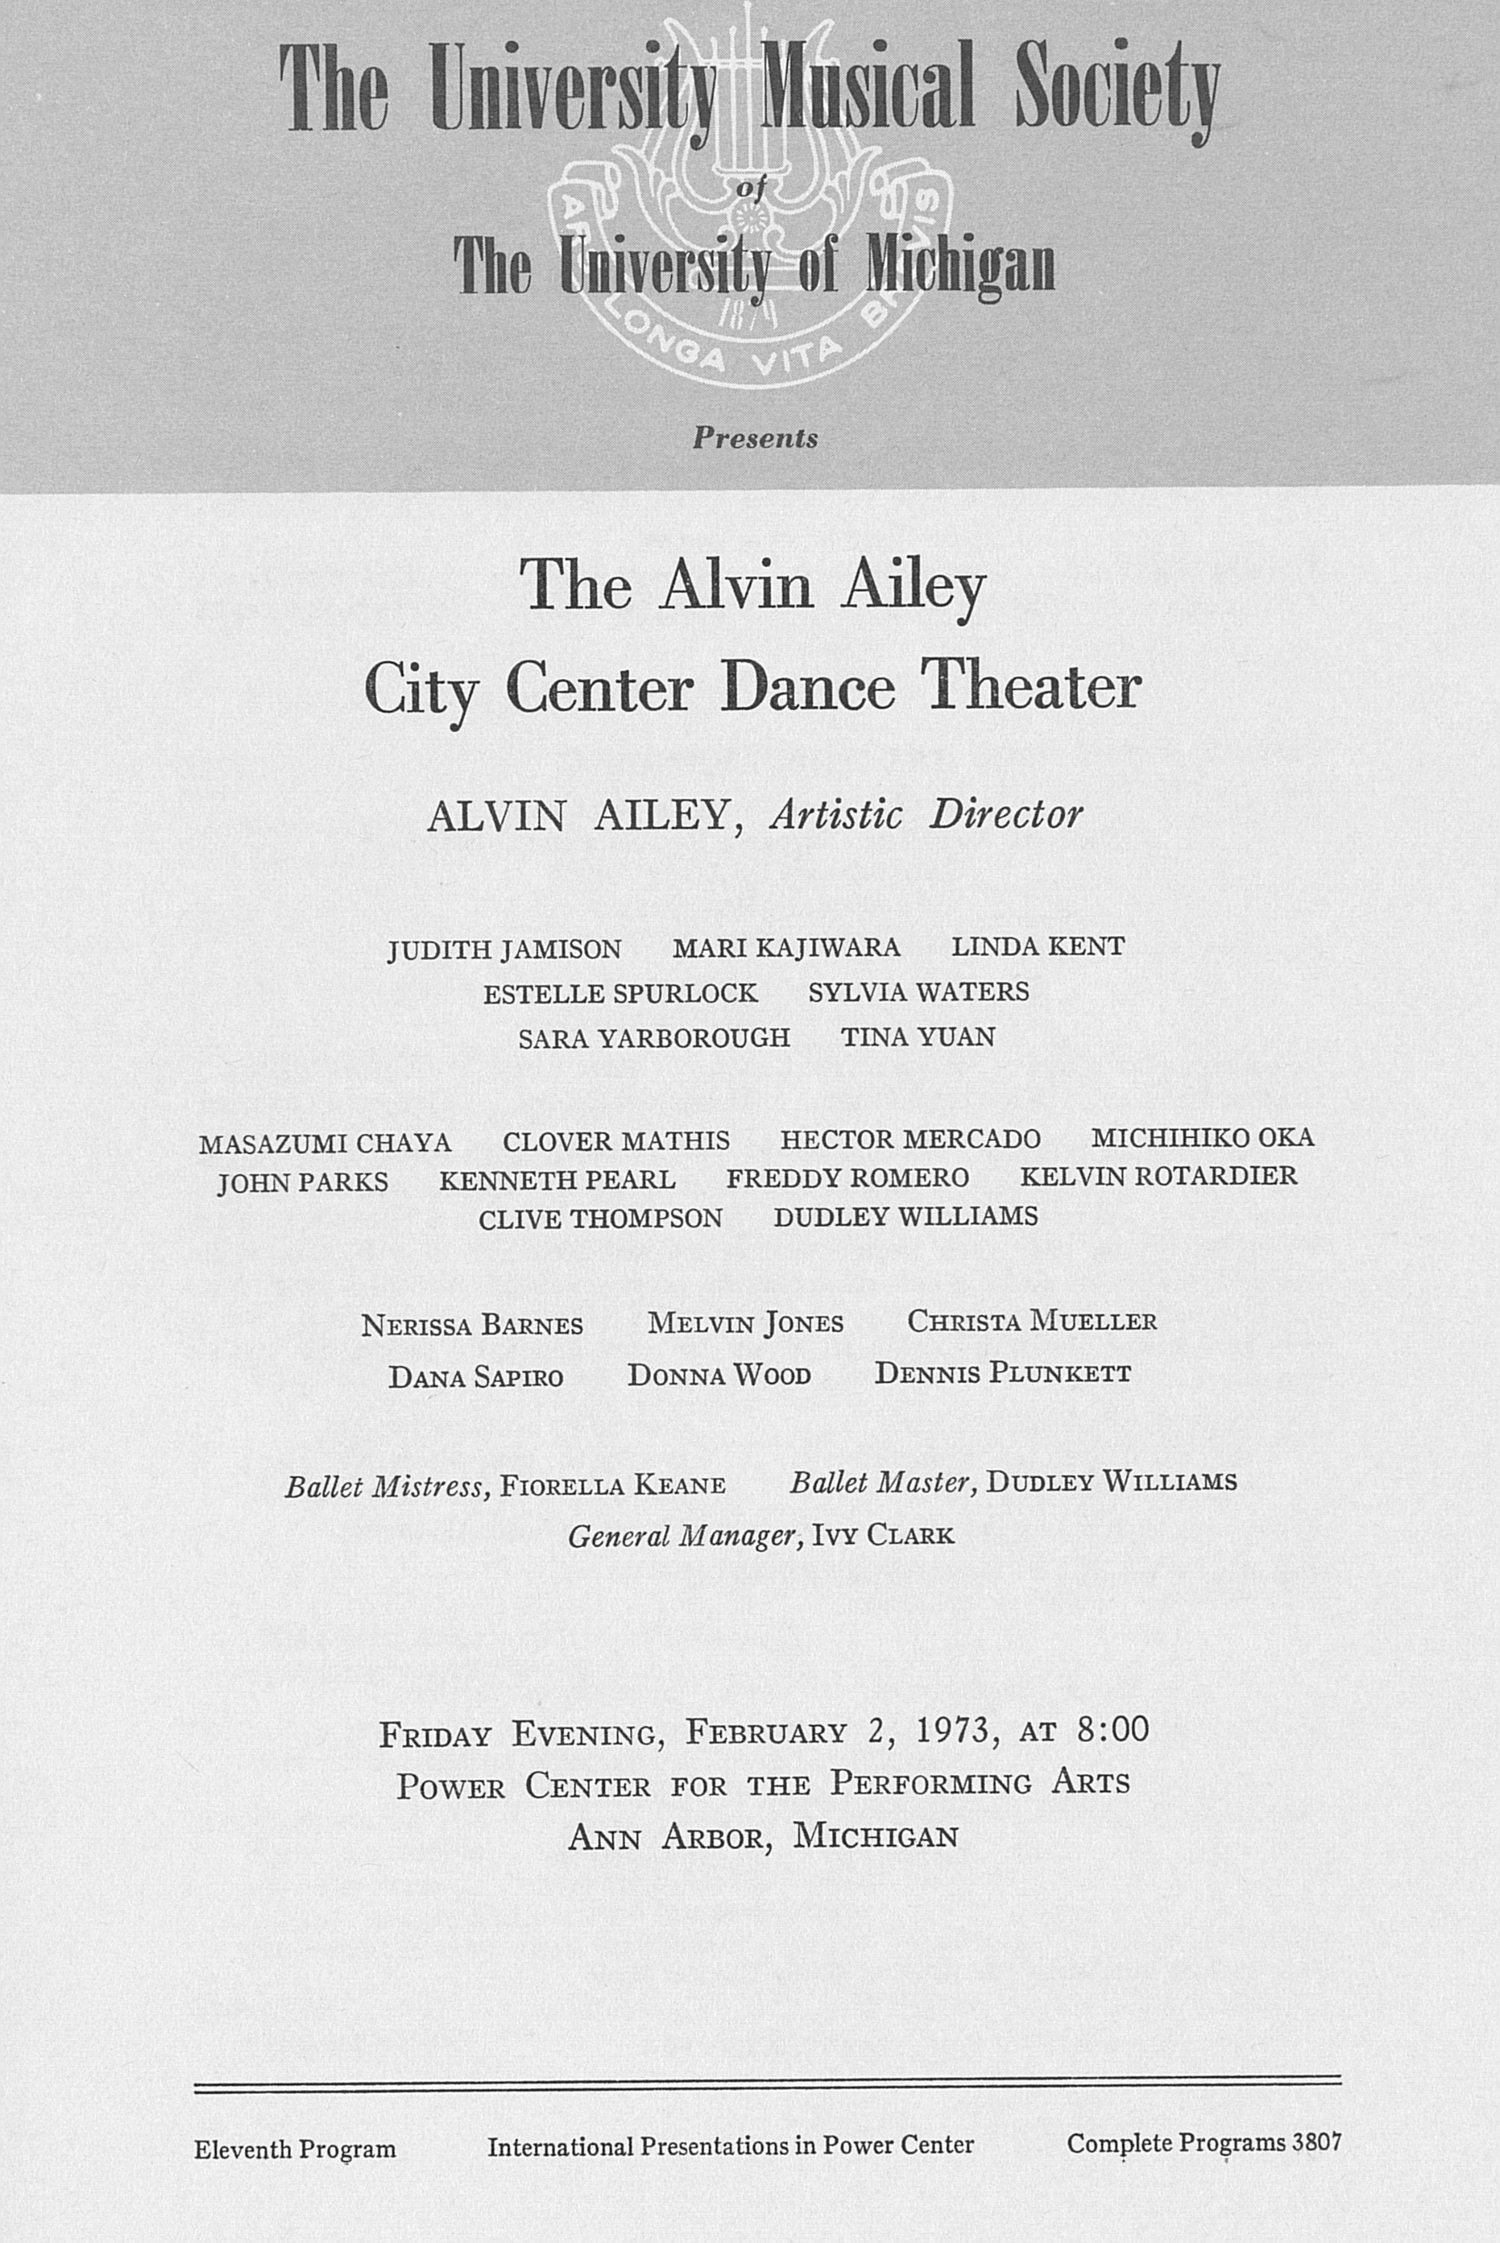 UMS Concert Program, February 2, 1973: The Alvin Ailey City Center Dance Theater -- Alvin Ailey image